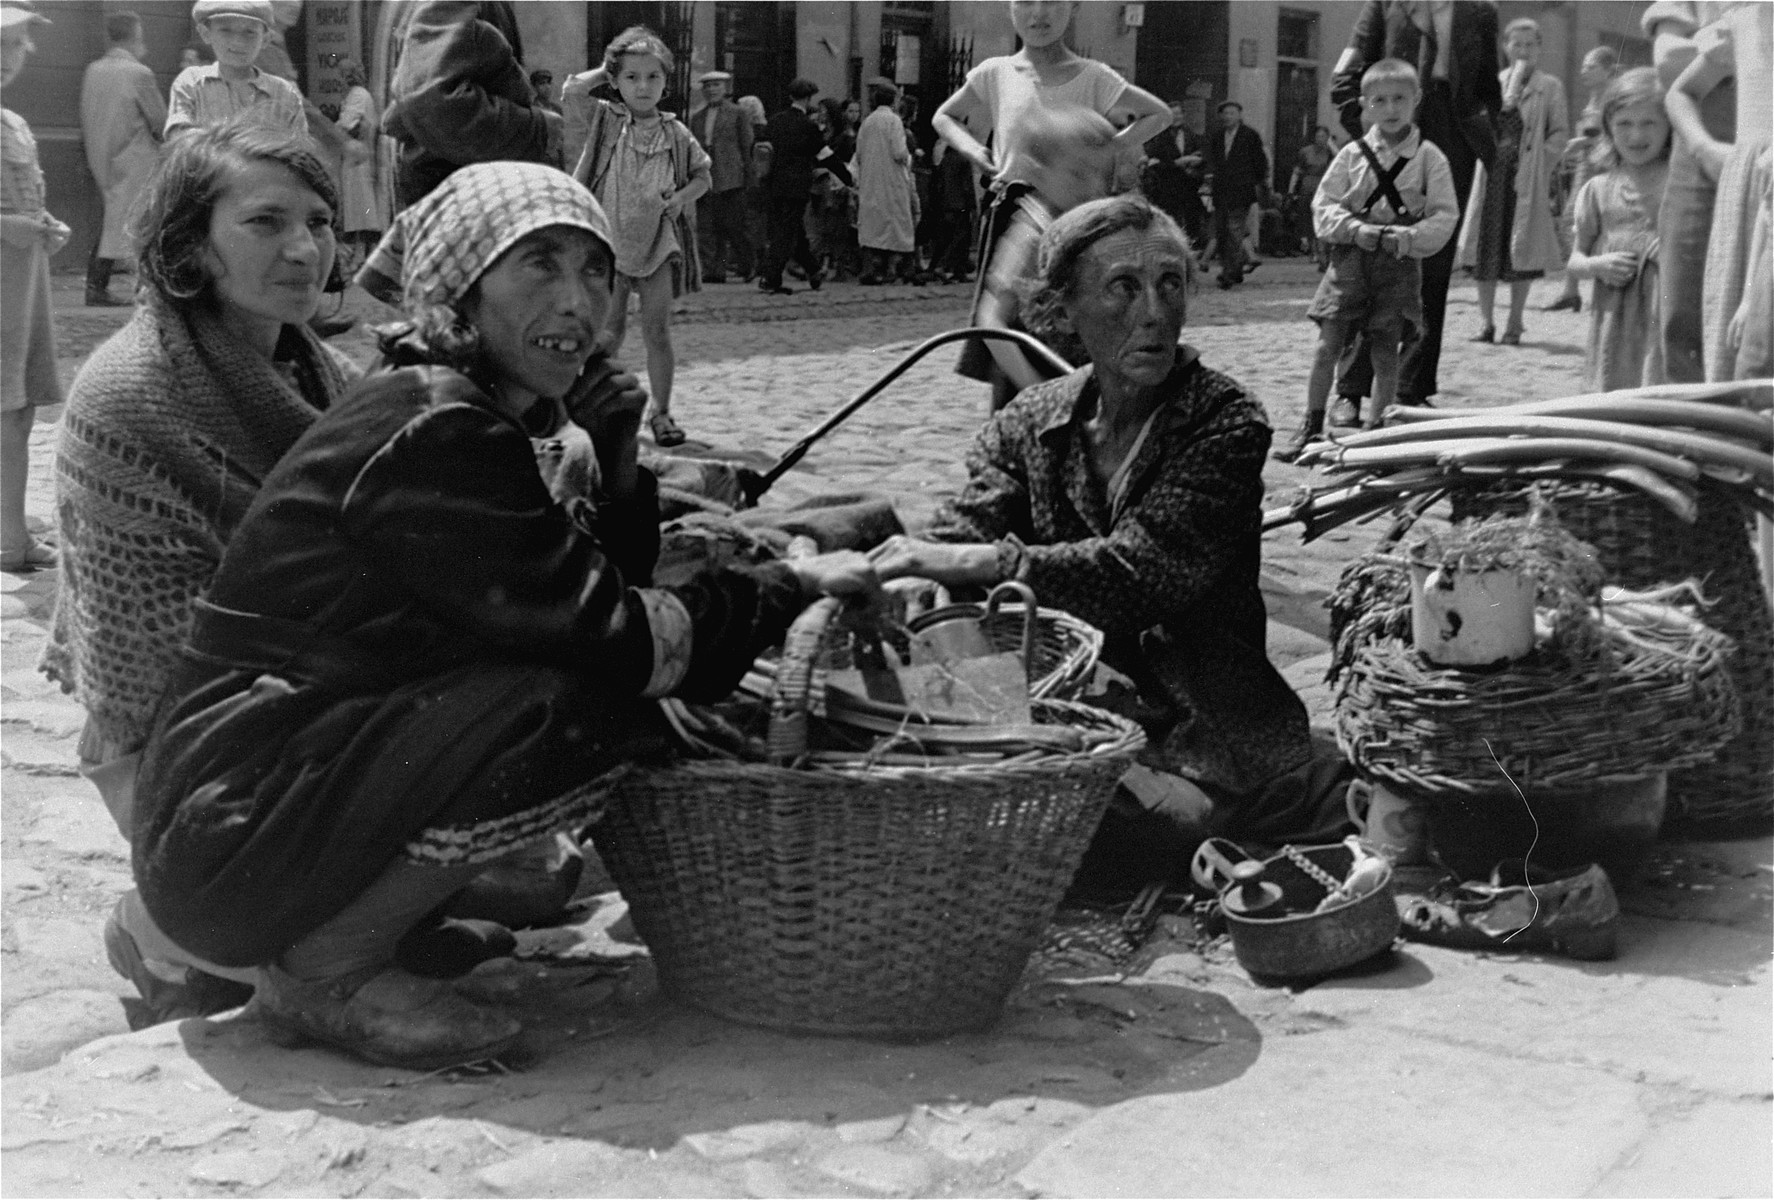 Three women sell household items on the street in the Warsaw ghetto.